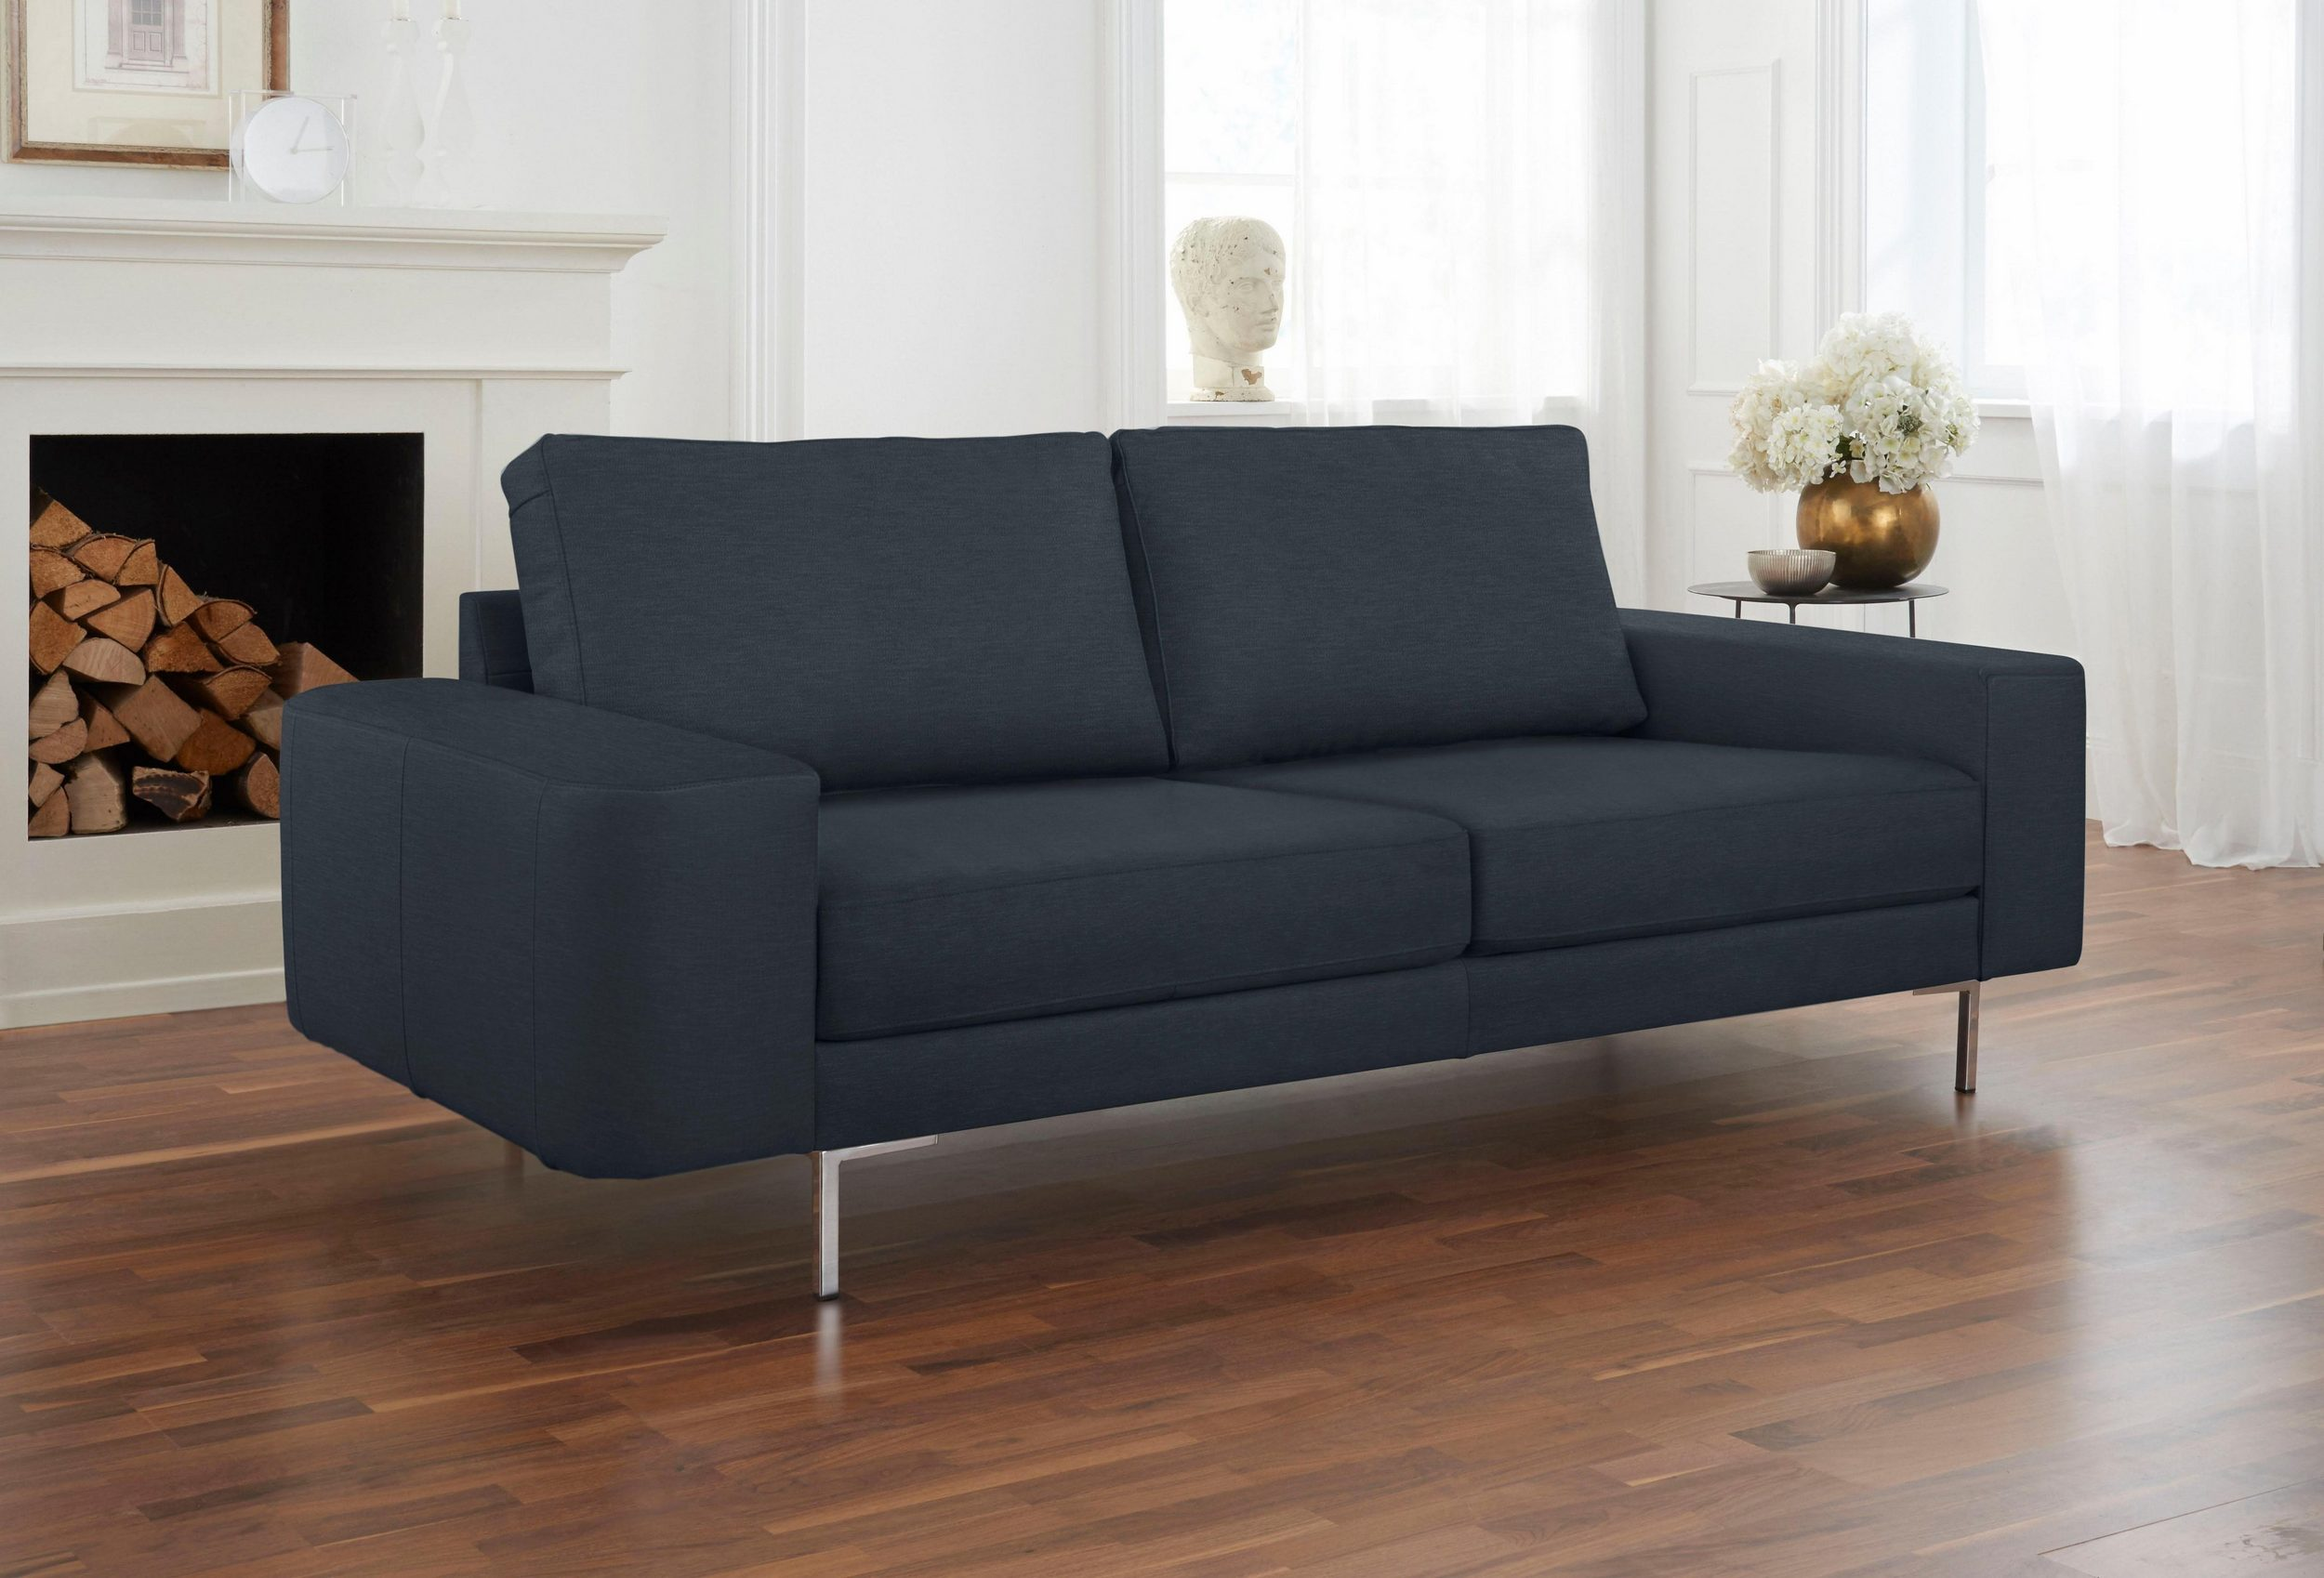 24 sparen alte gerberei 2 sitzer sofa lexgaard ab 799. Black Bedroom Furniture Sets. Home Design Ideas